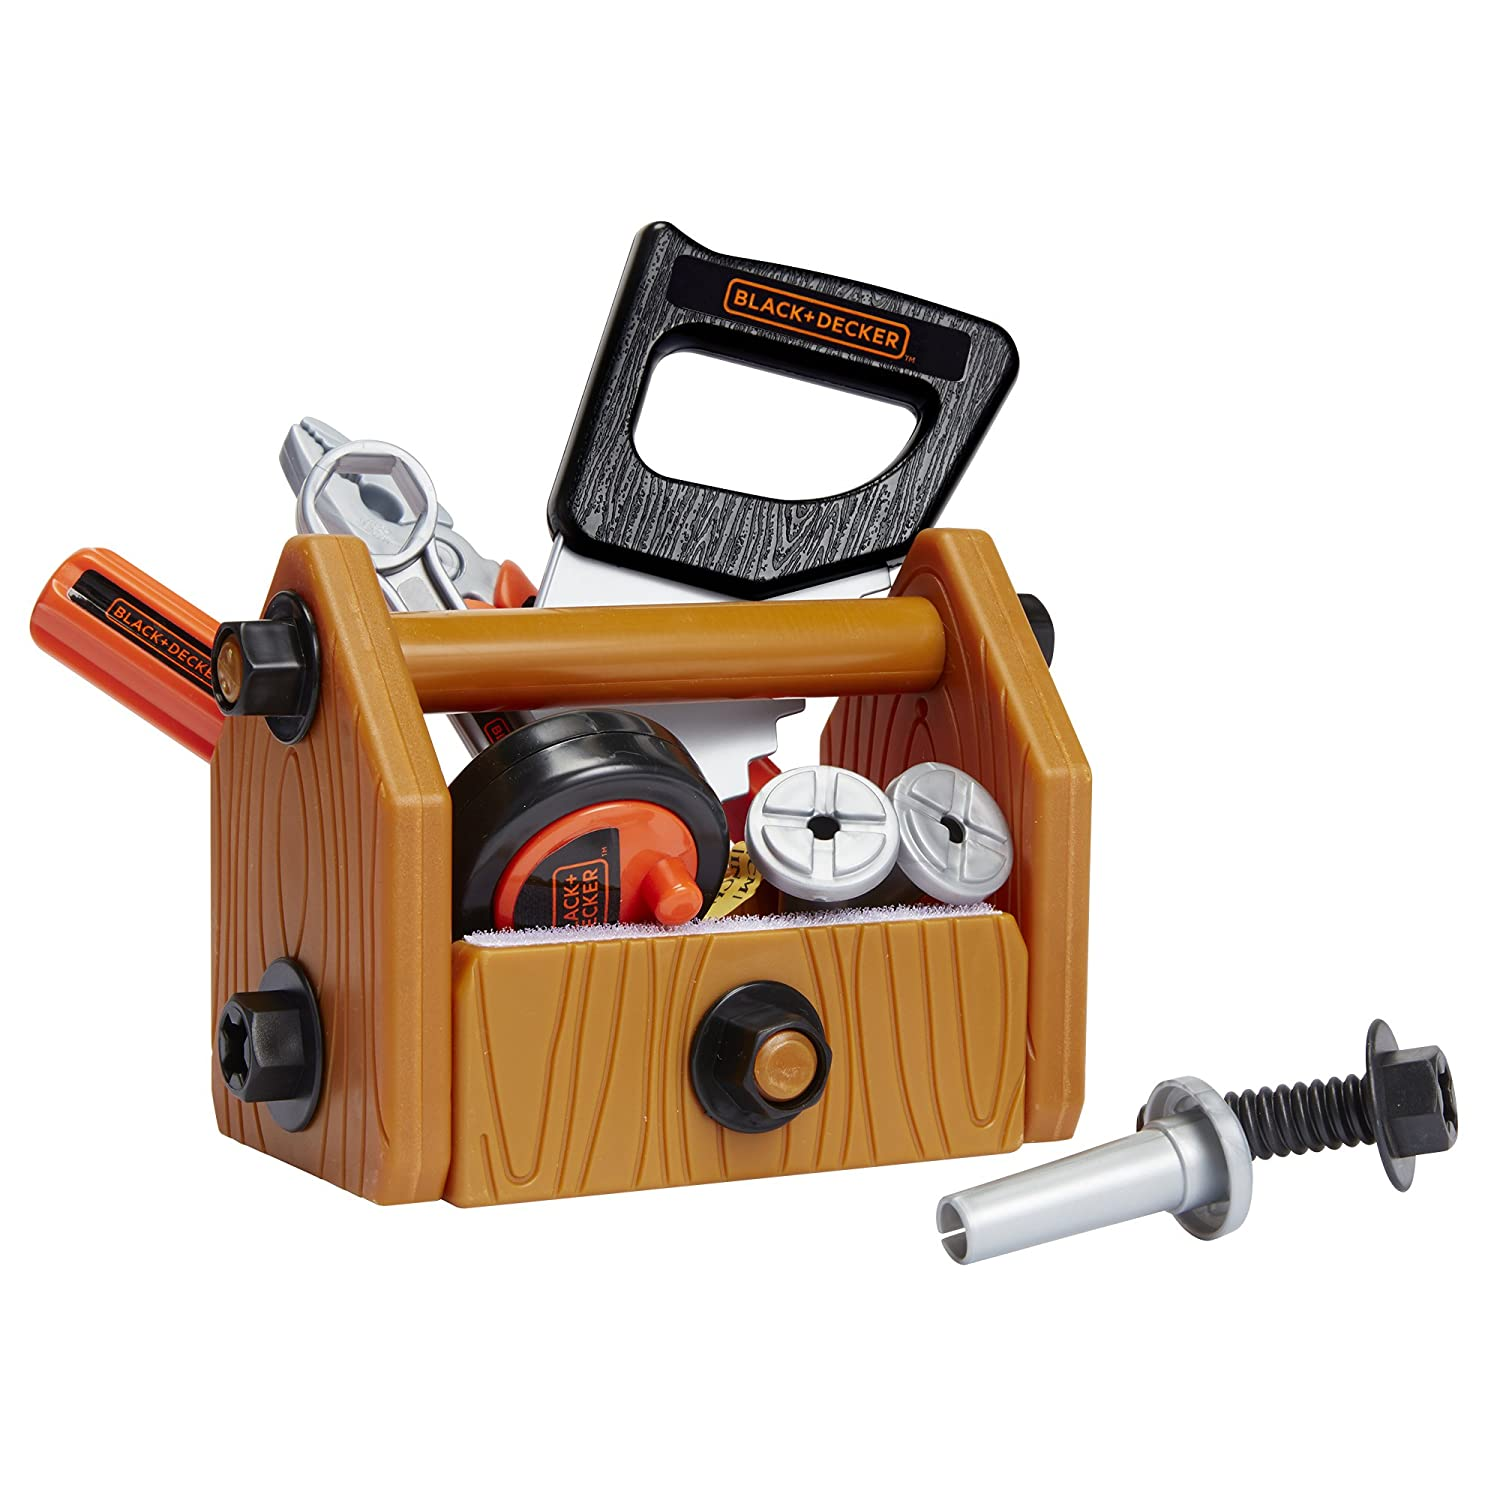 black and decker tools. amazon.com: black + decker junior deluxe tool set with toolbox - 42 tools \u0026 accessories: toys games and o